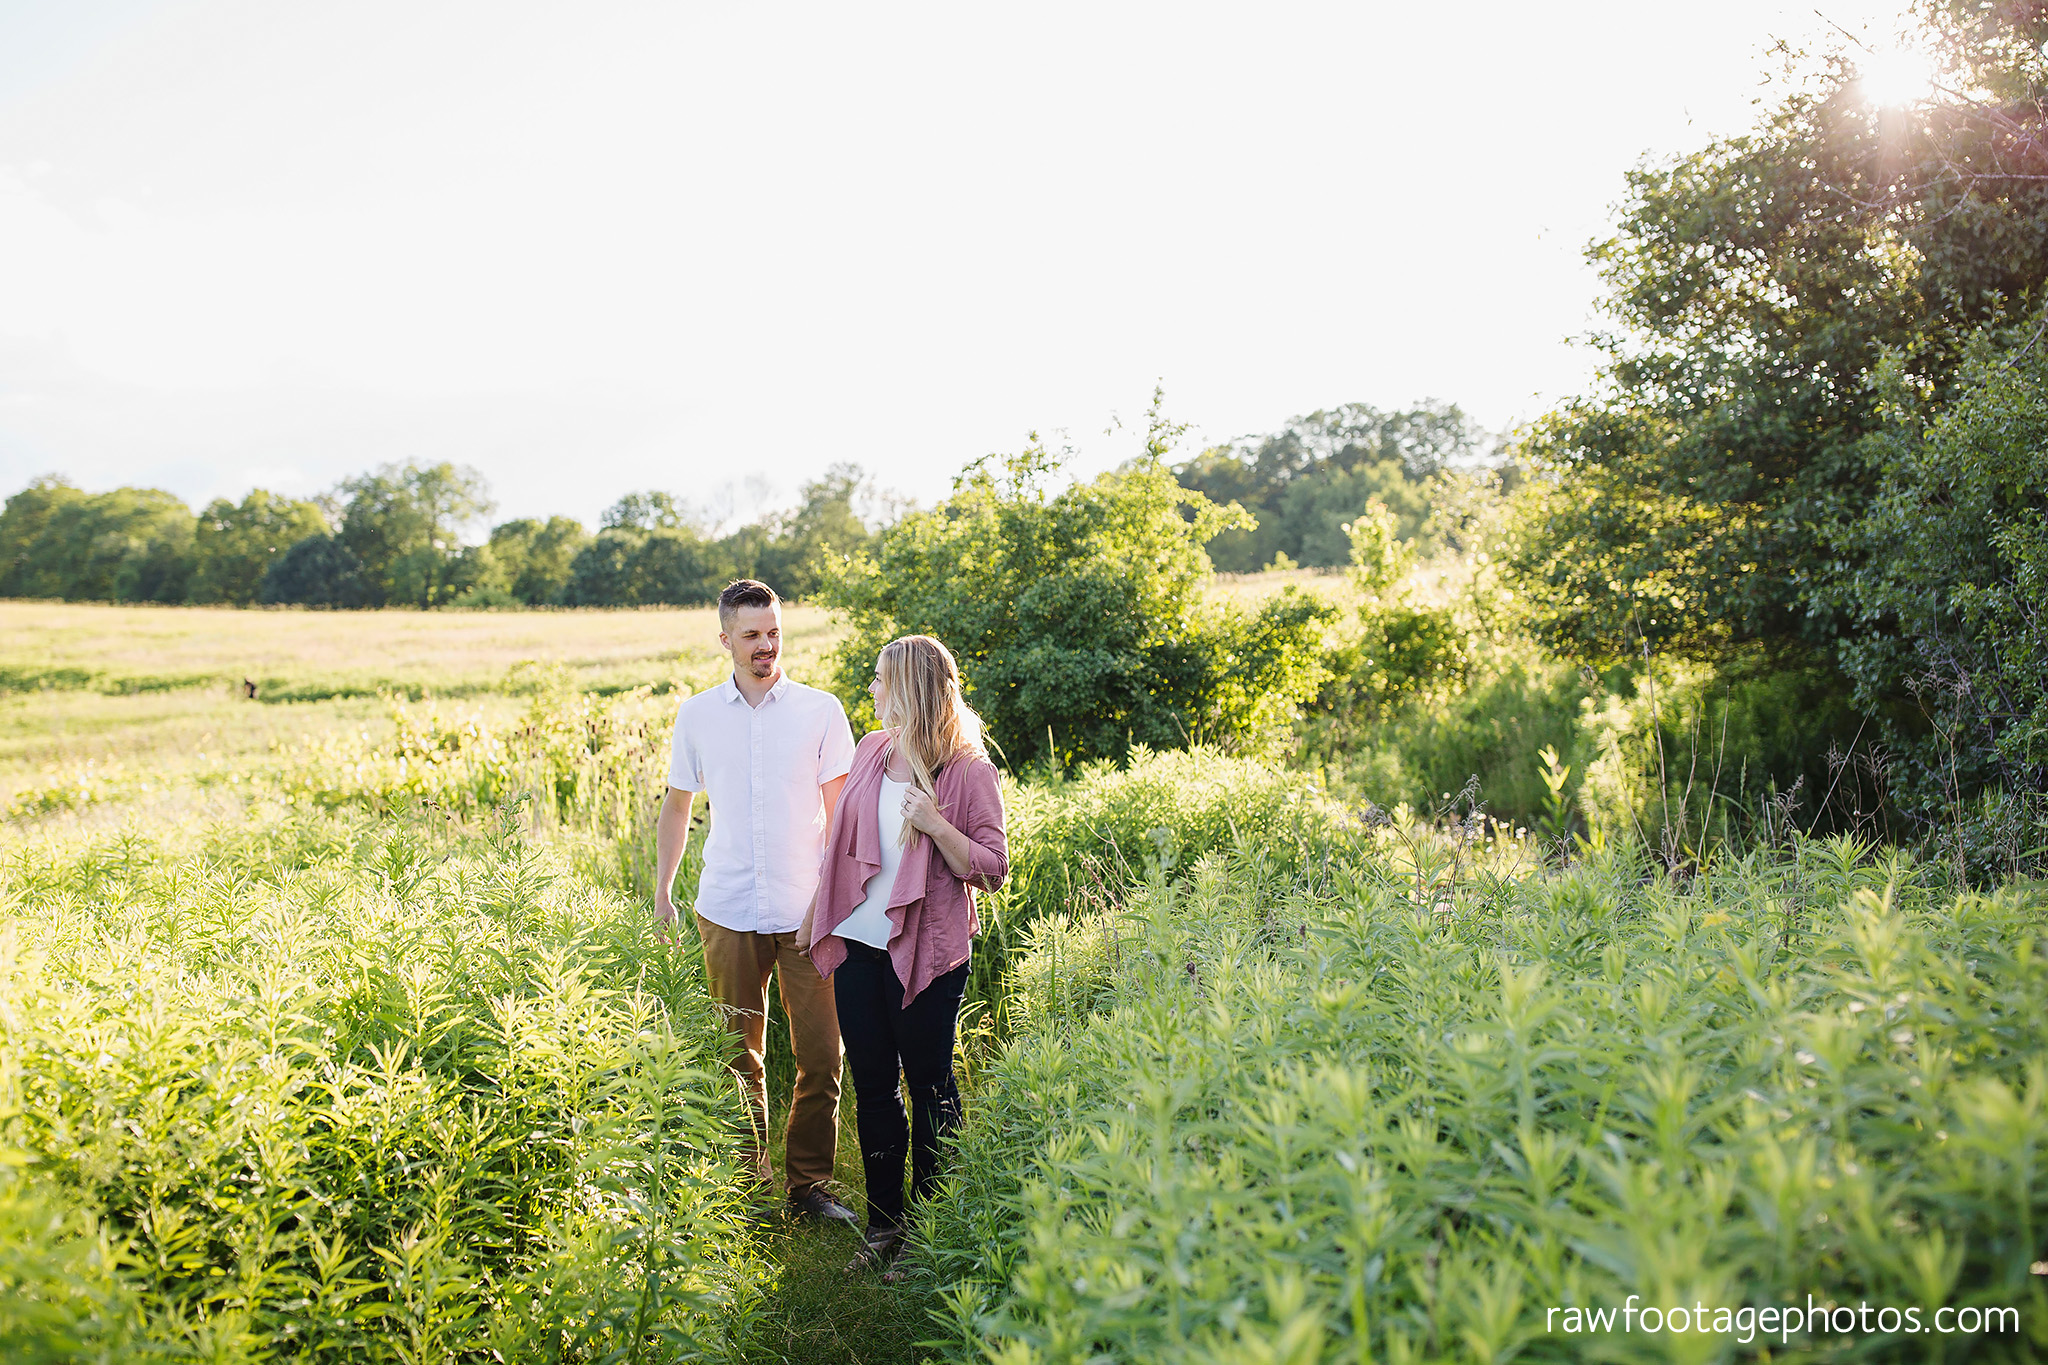 london_ontario_wedding_photographer-raw_footage_photography-mentoring-workshop-golden_hour-engagement_session009.jpg